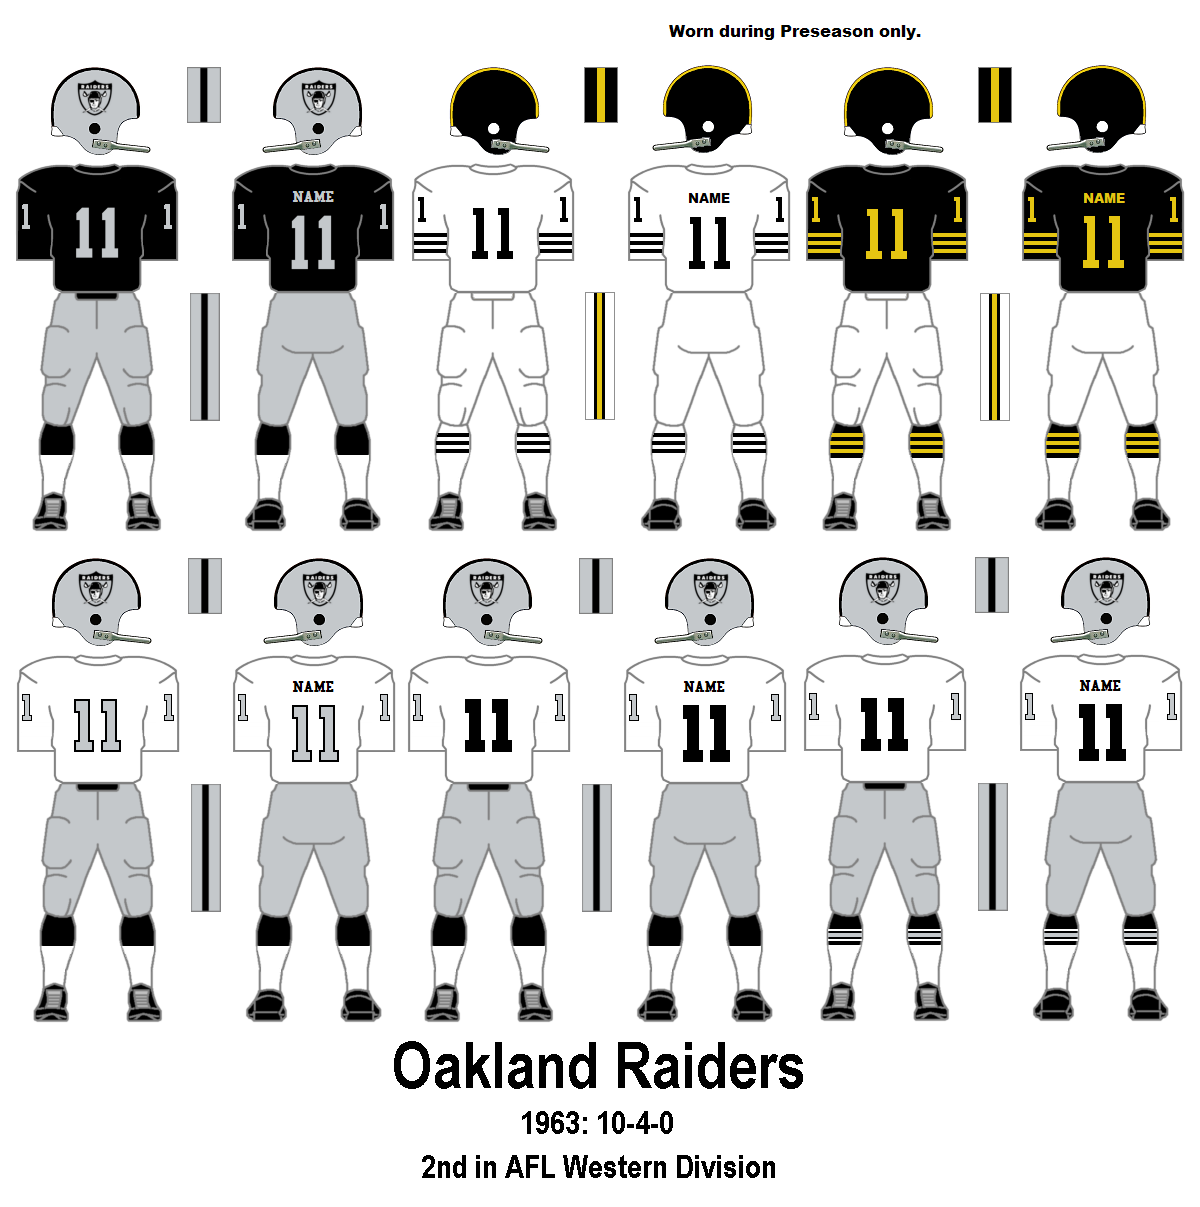 2012 10 01 archive moreover 2012 05 01 archive additionally 1963 Oaklnad Raiders besides 2012 06 01 archive likewise Lalki Robione Na Szydelku. on 2012 05 01 archive